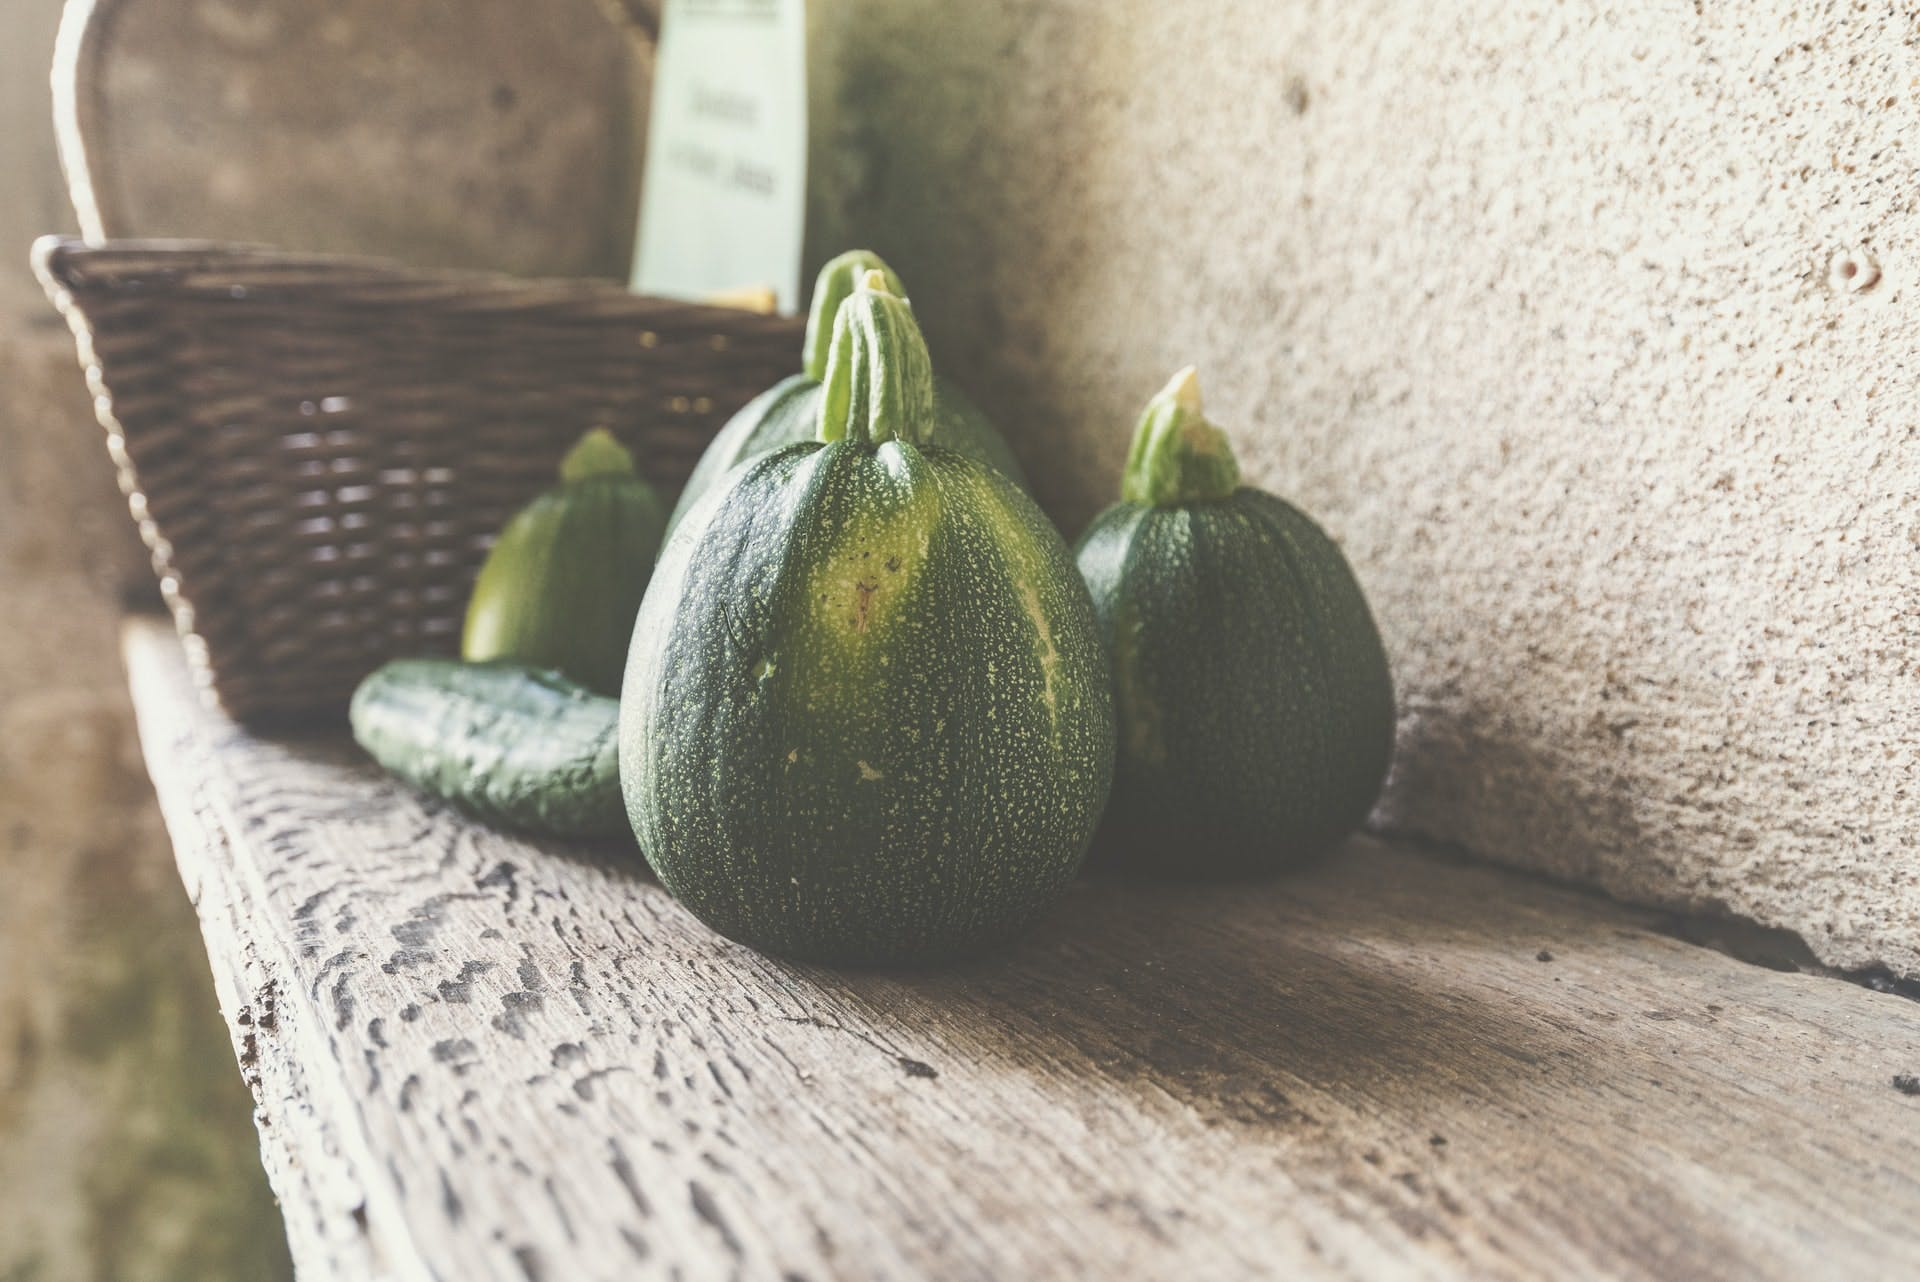 GREEN COURGETTES